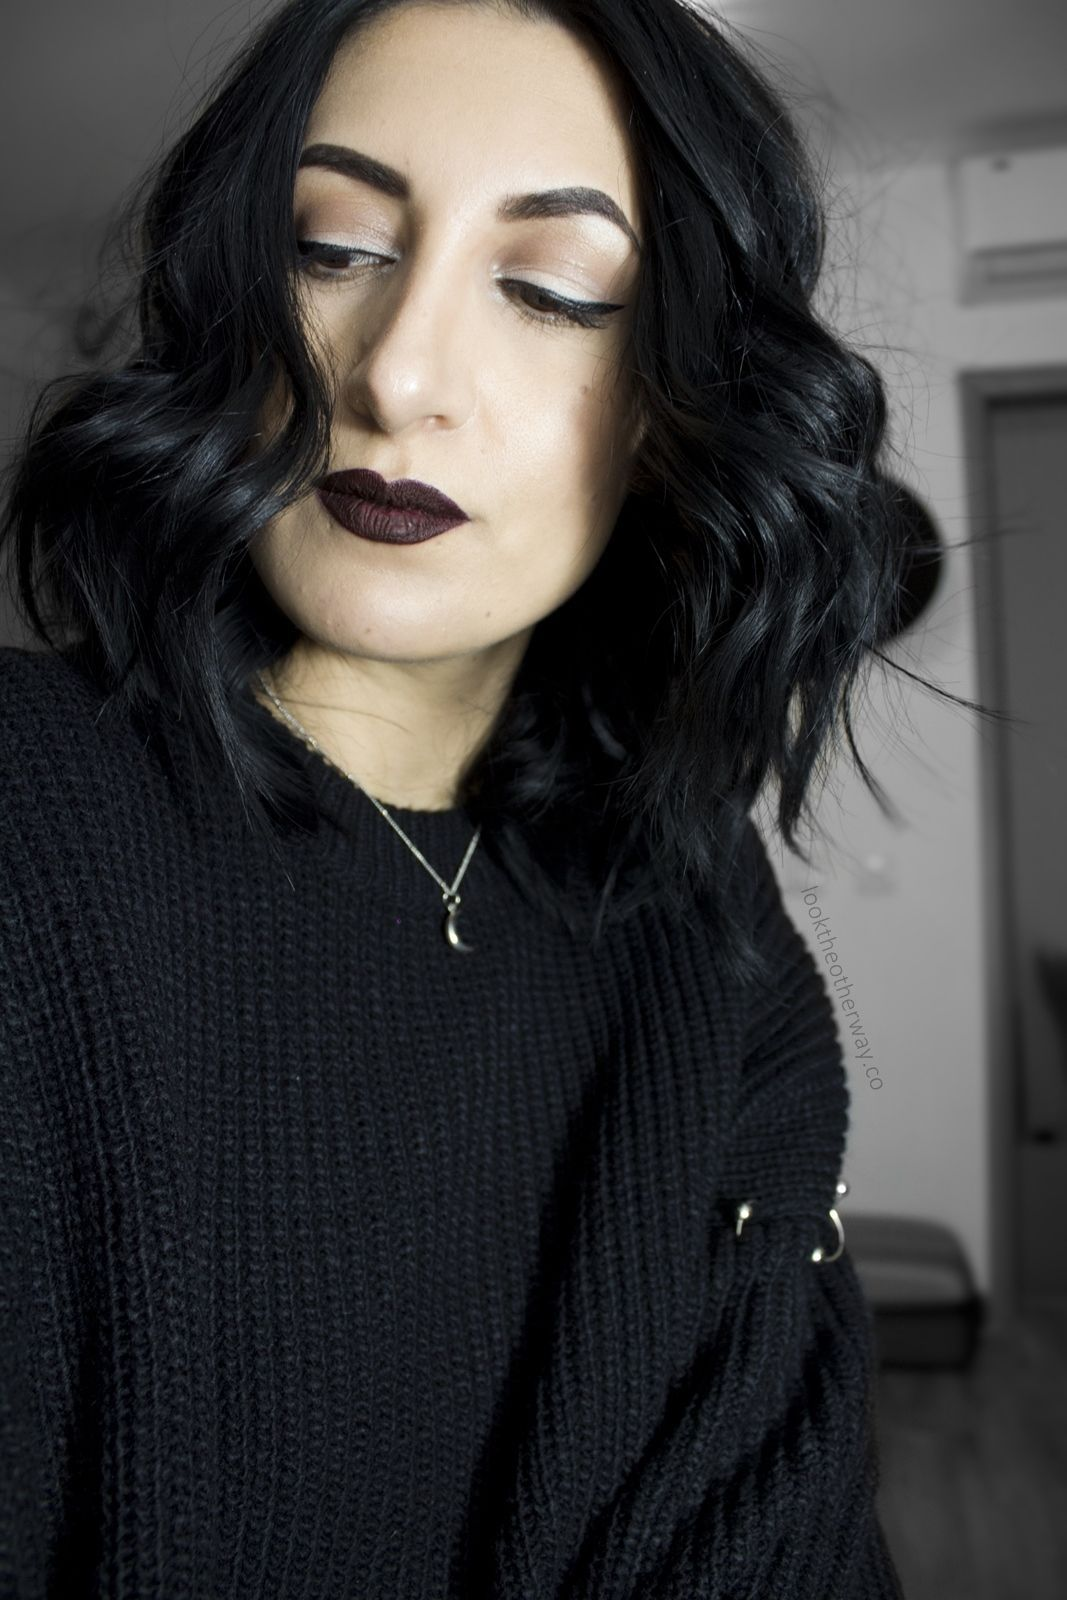 Simple Everyday Gothic Makeup Looktheotherwayco In 2019 in